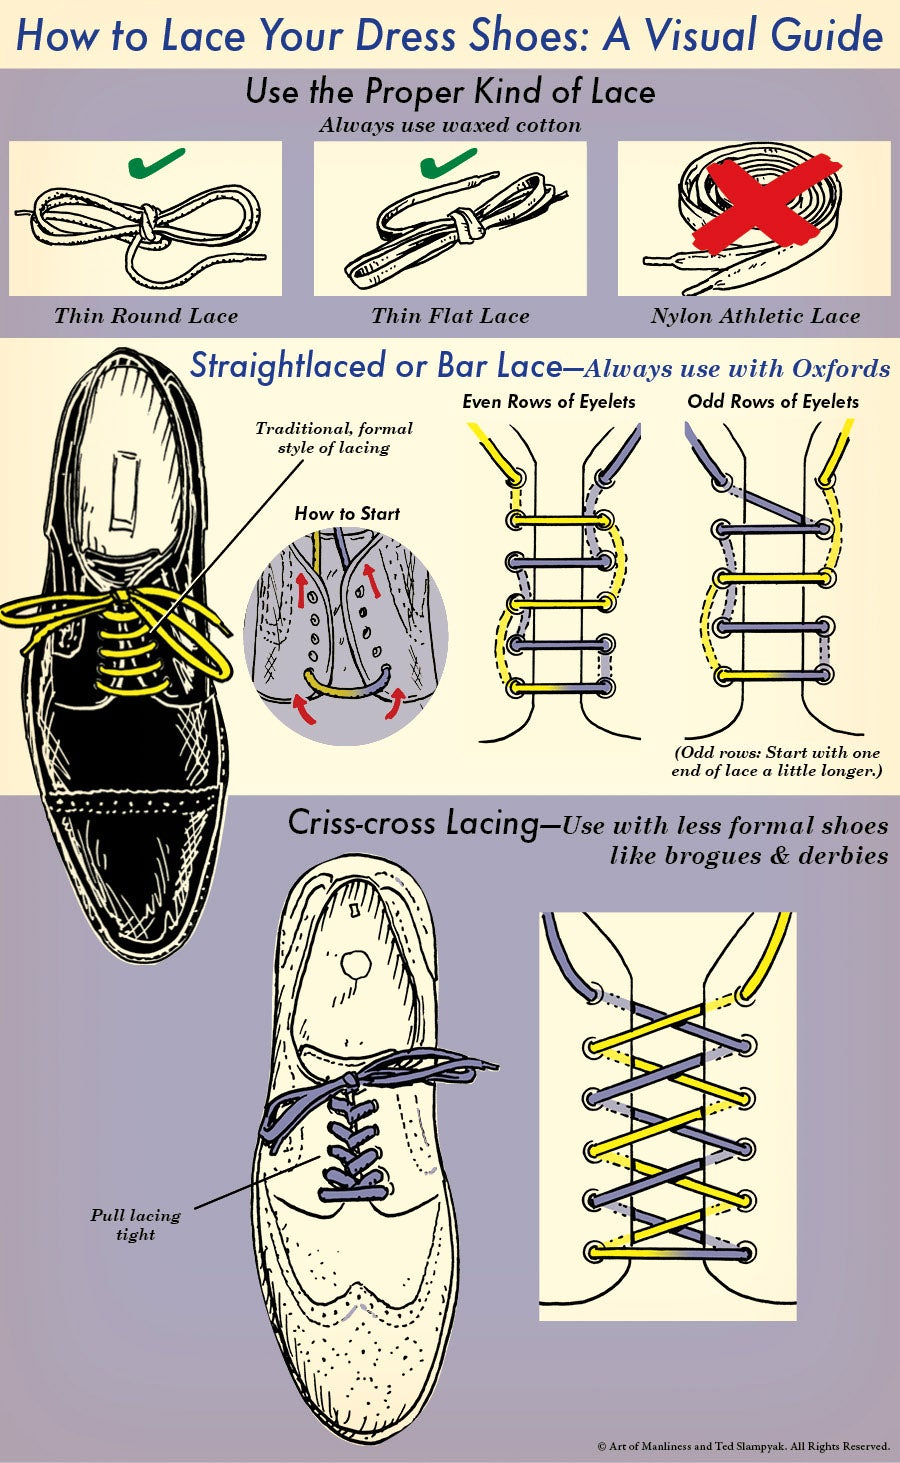 How To Properly Lace A Dress Shoe